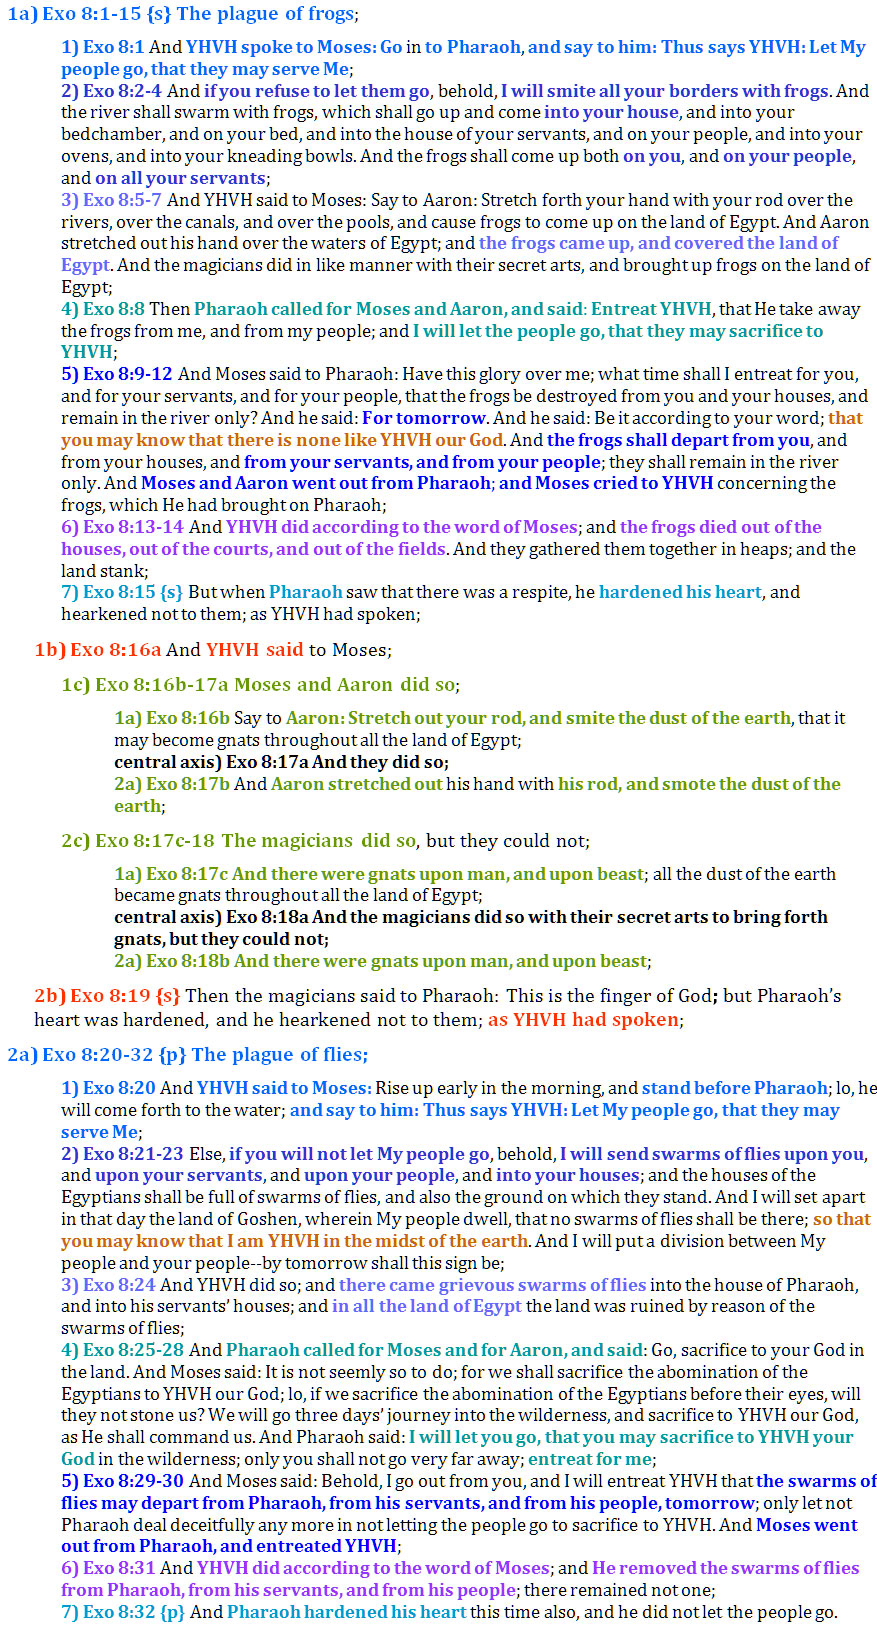 Exo 8:1-32 chiasm | christine's bible study at alittleperspective.com